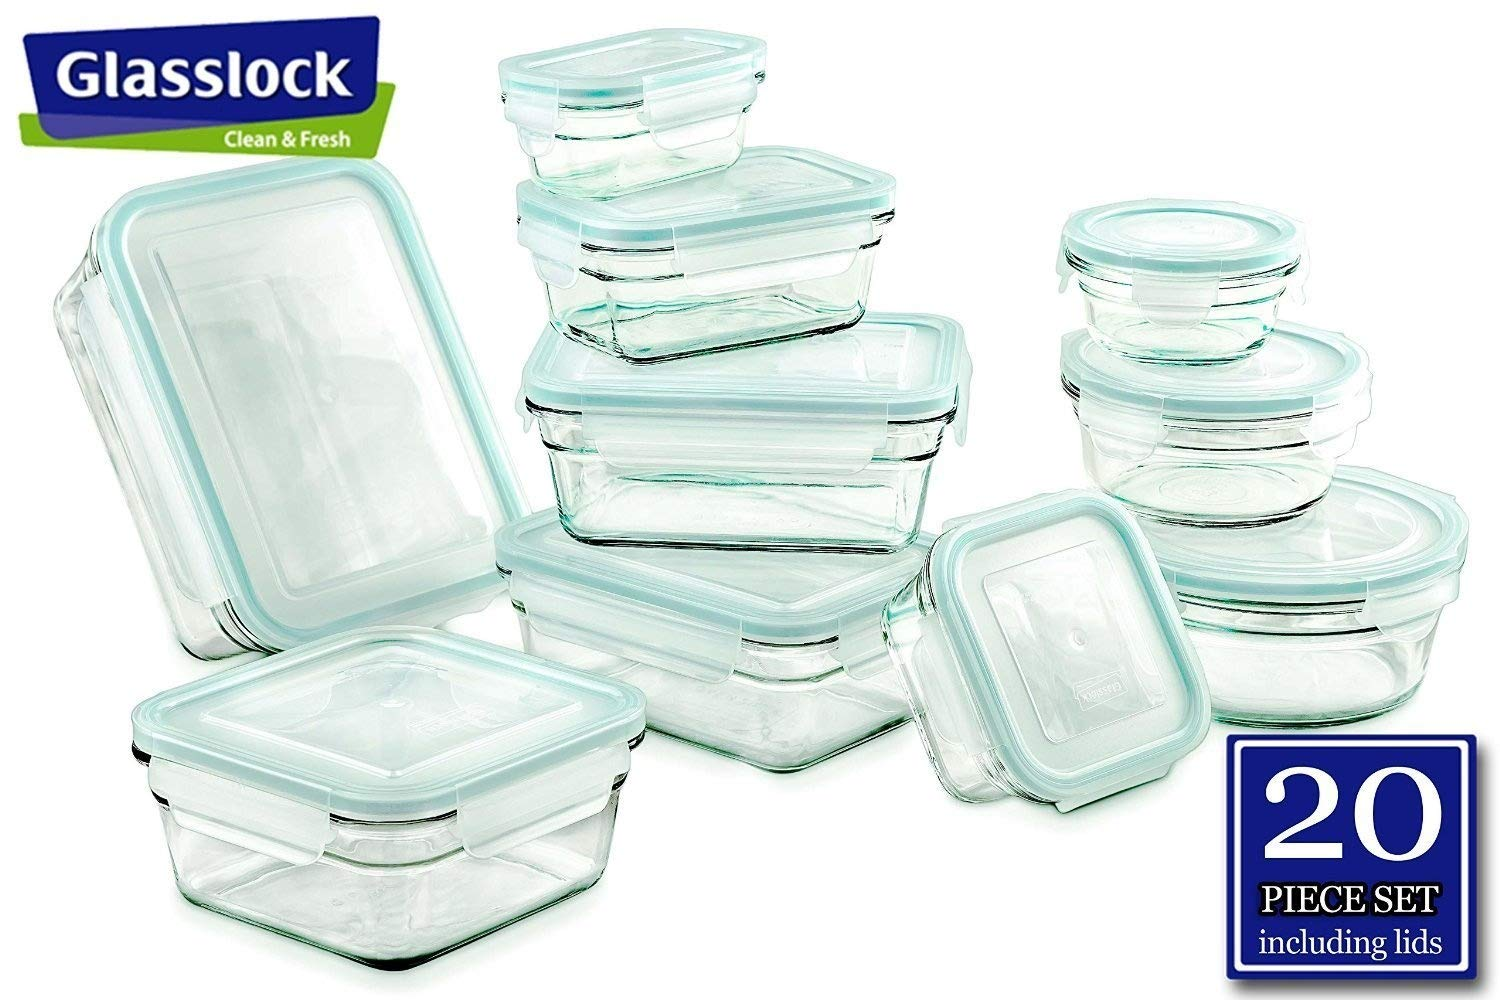 Glasslock Food Storage Glass Containers 20pc set R Anti-Spill Proof Airtight ~ Microwave & Oven Safe